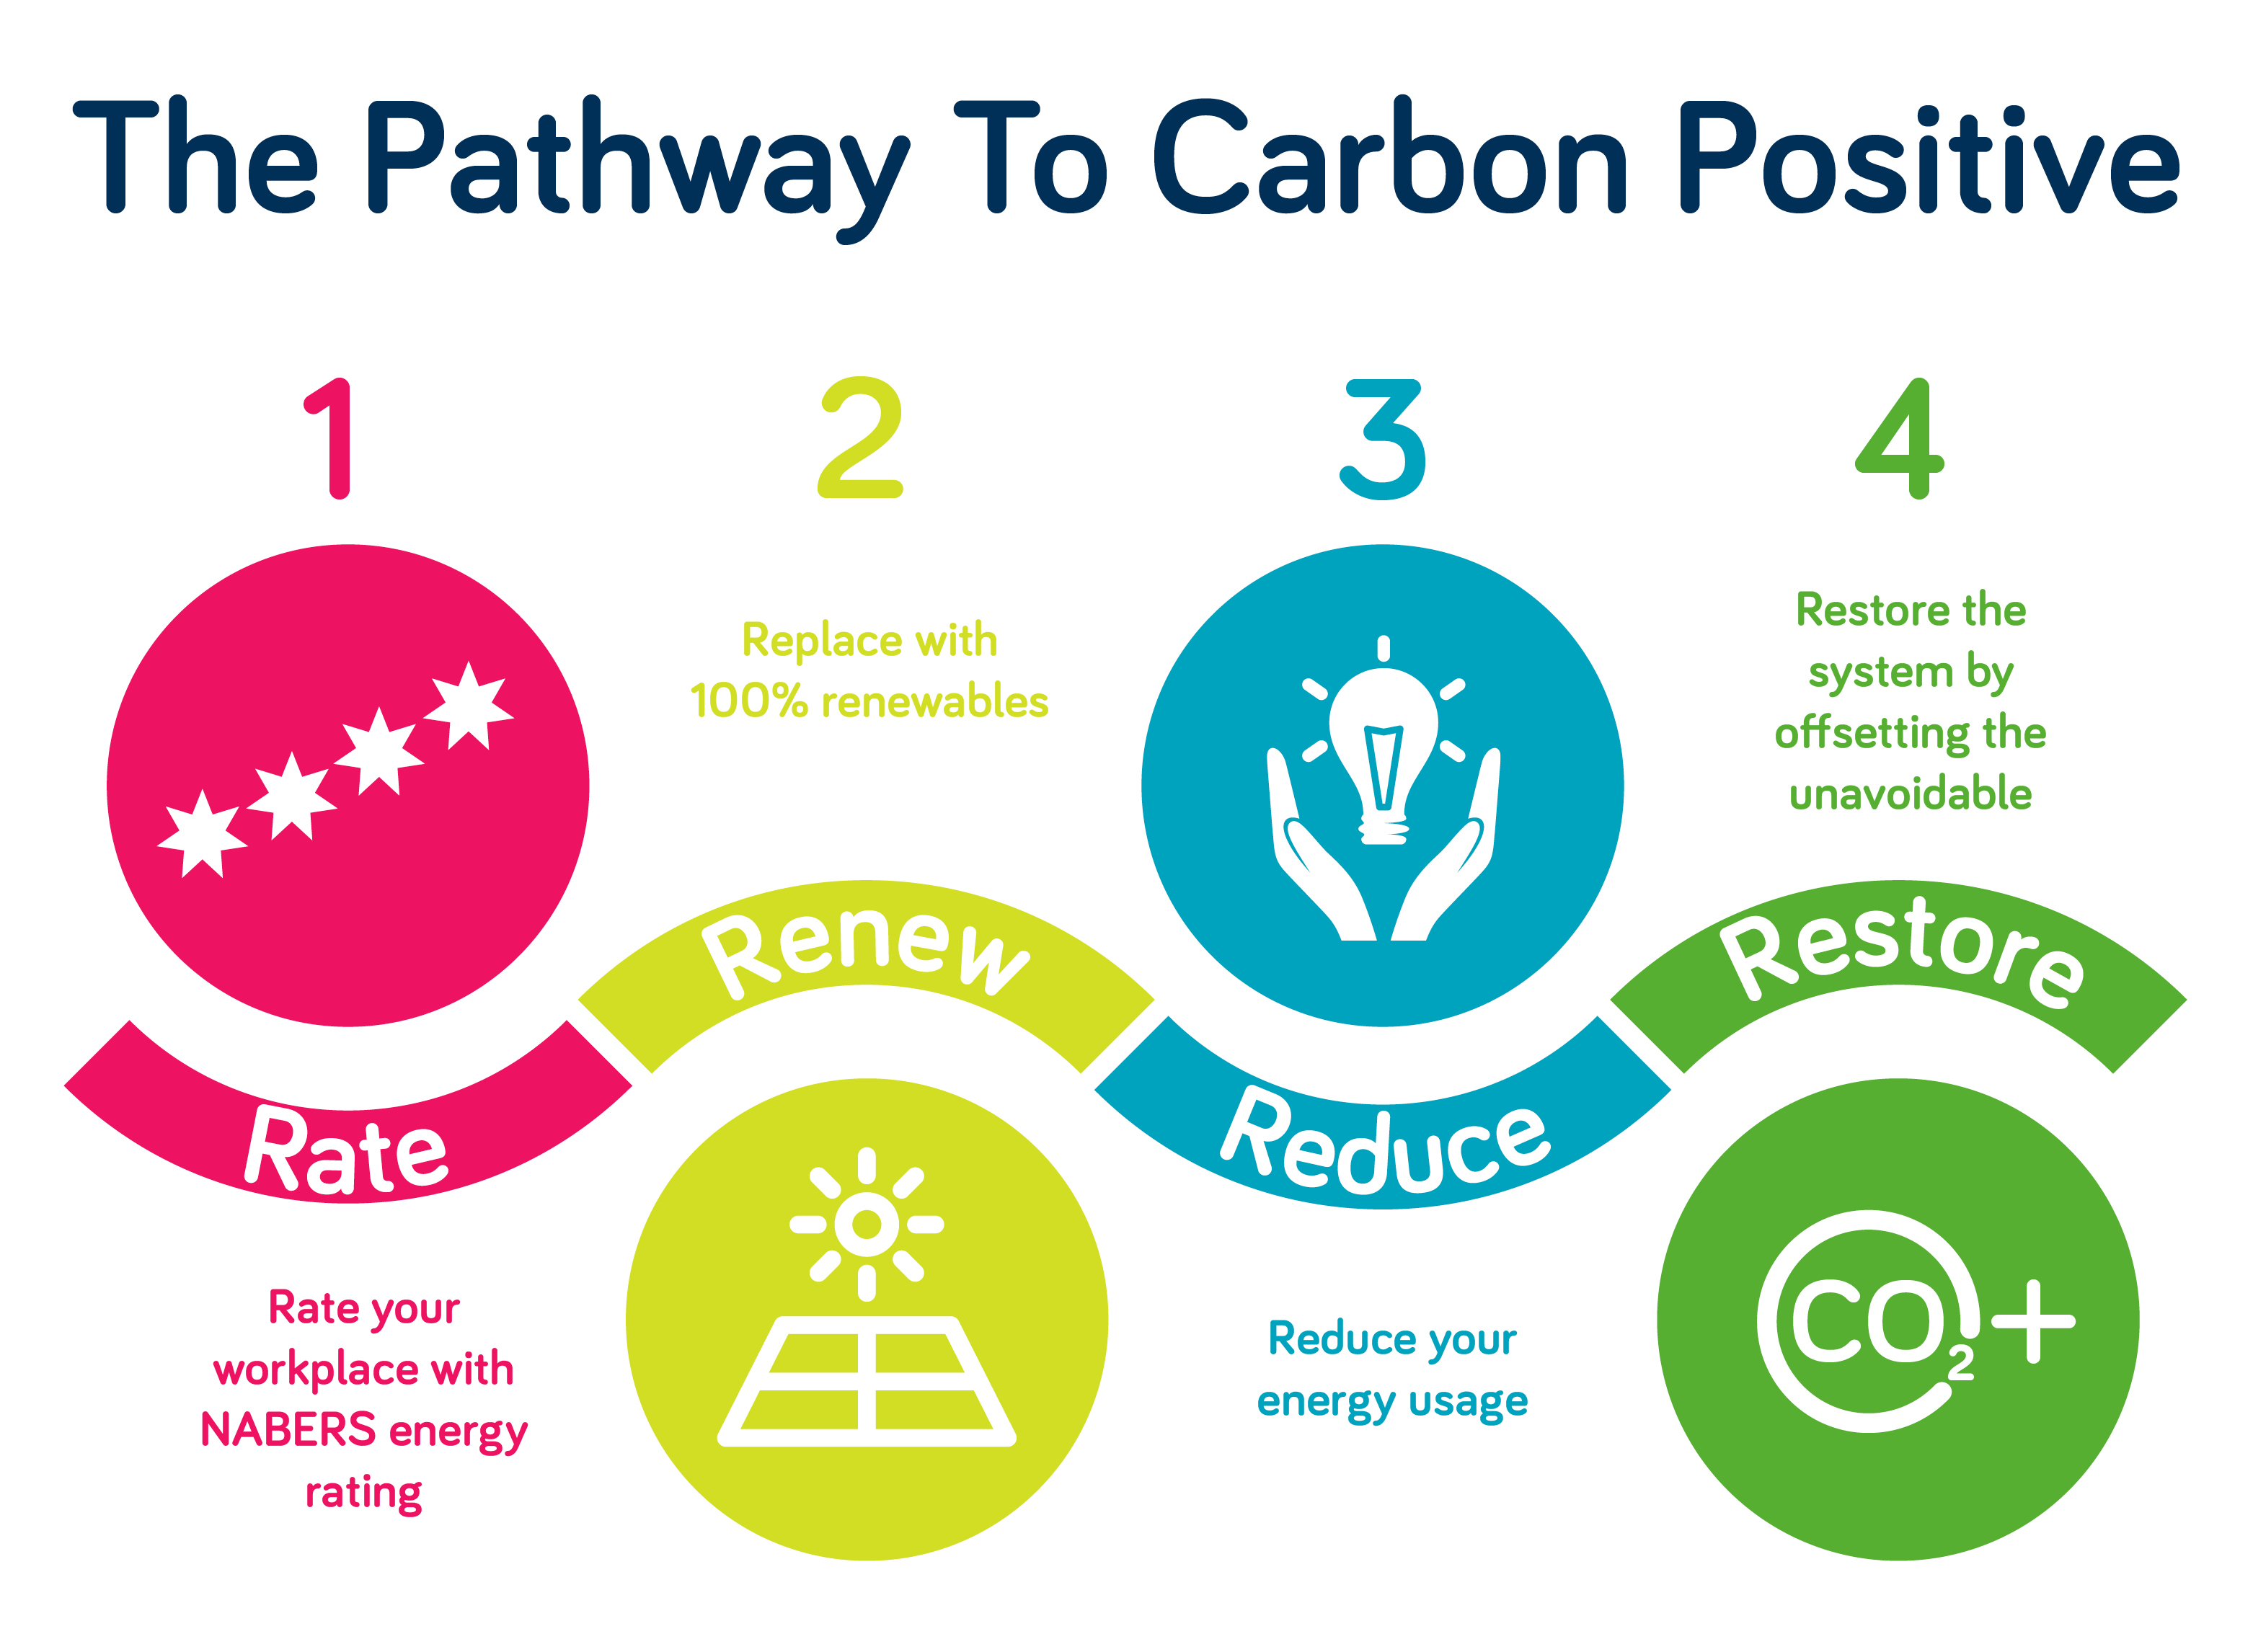 The pathway to carbon positive